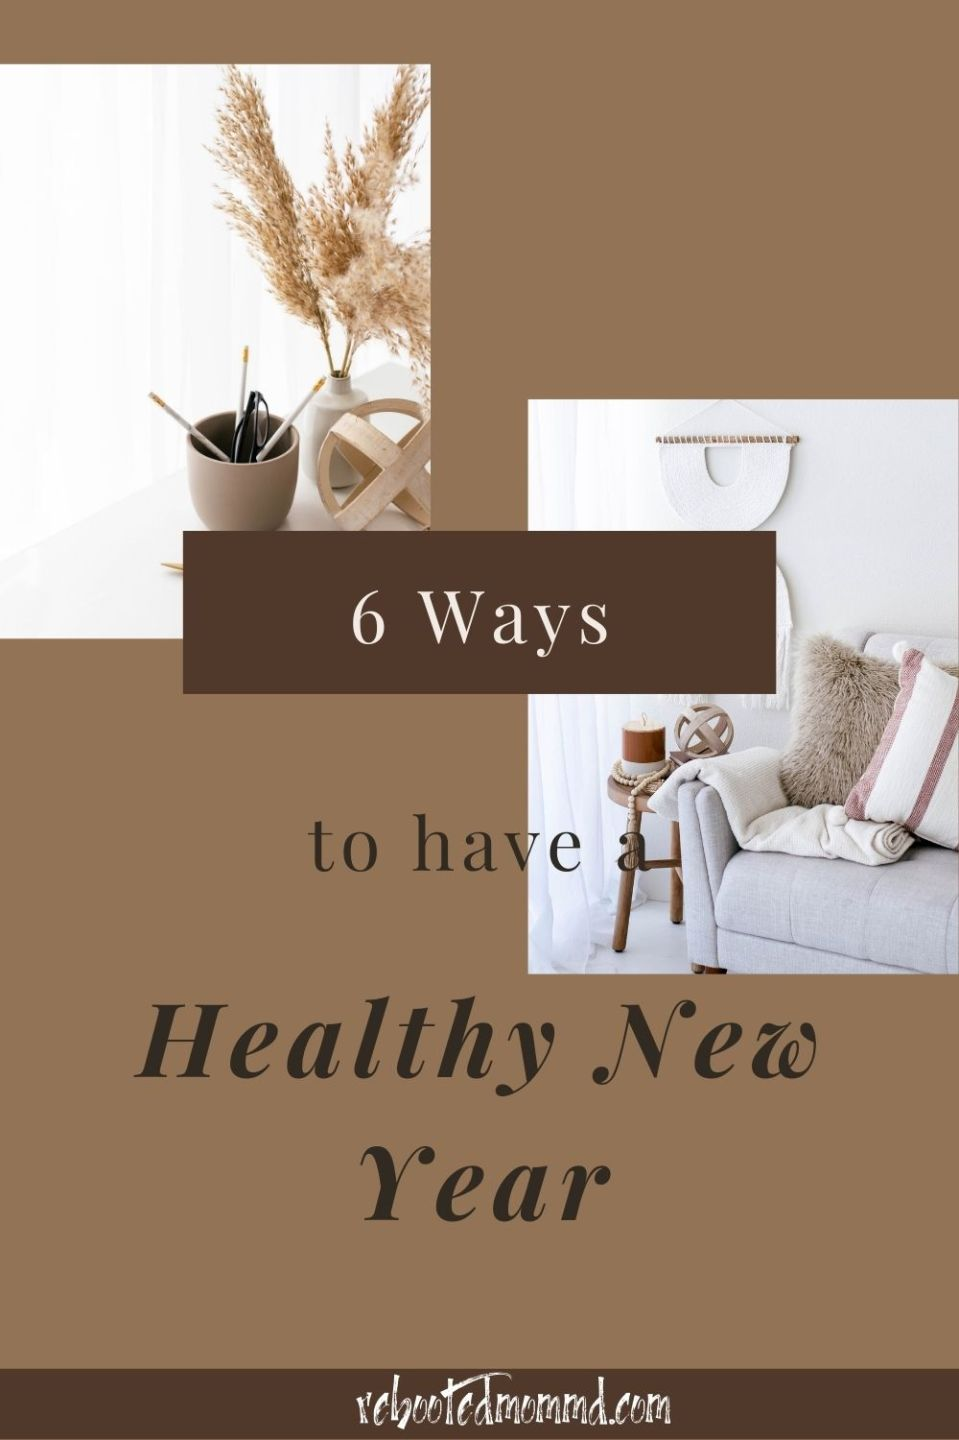 6 Ways to Have a Healthy New Year